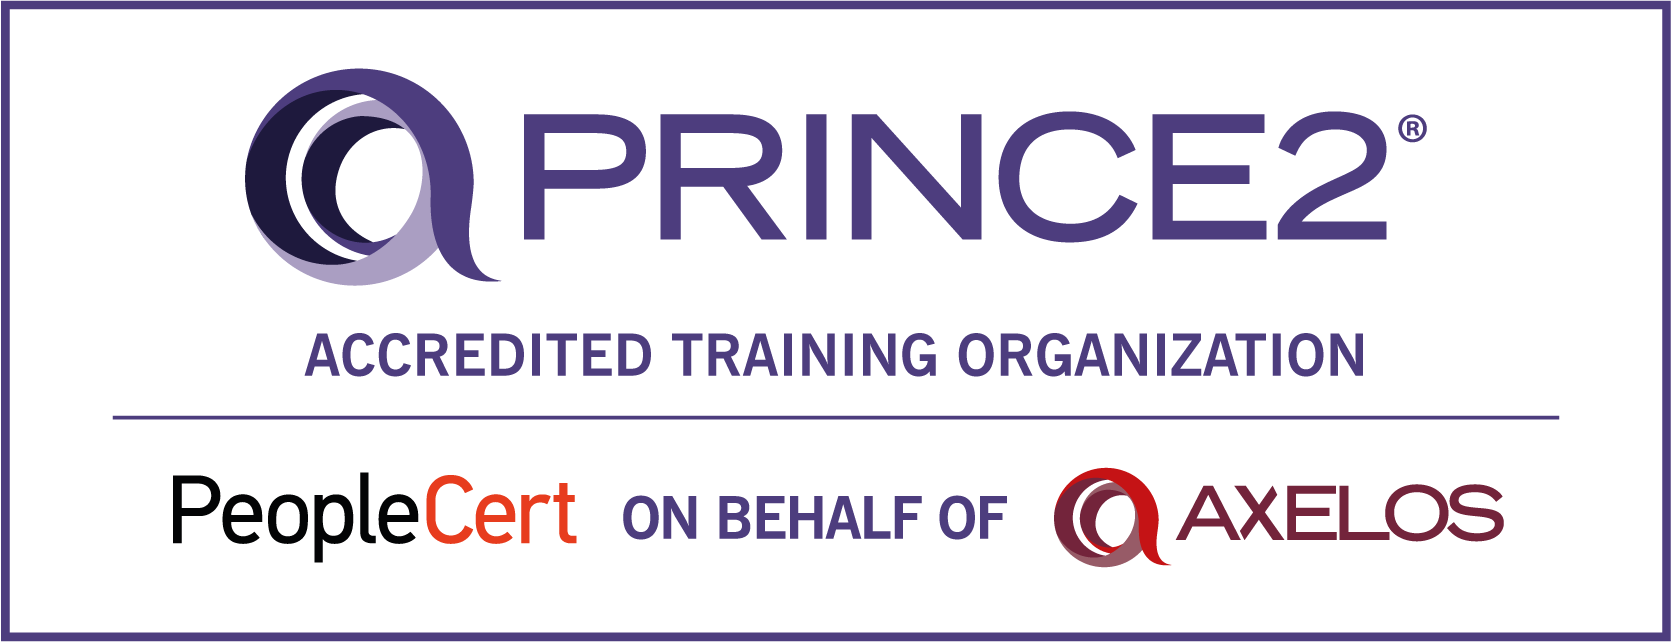 prince2 certification_prince2 project management